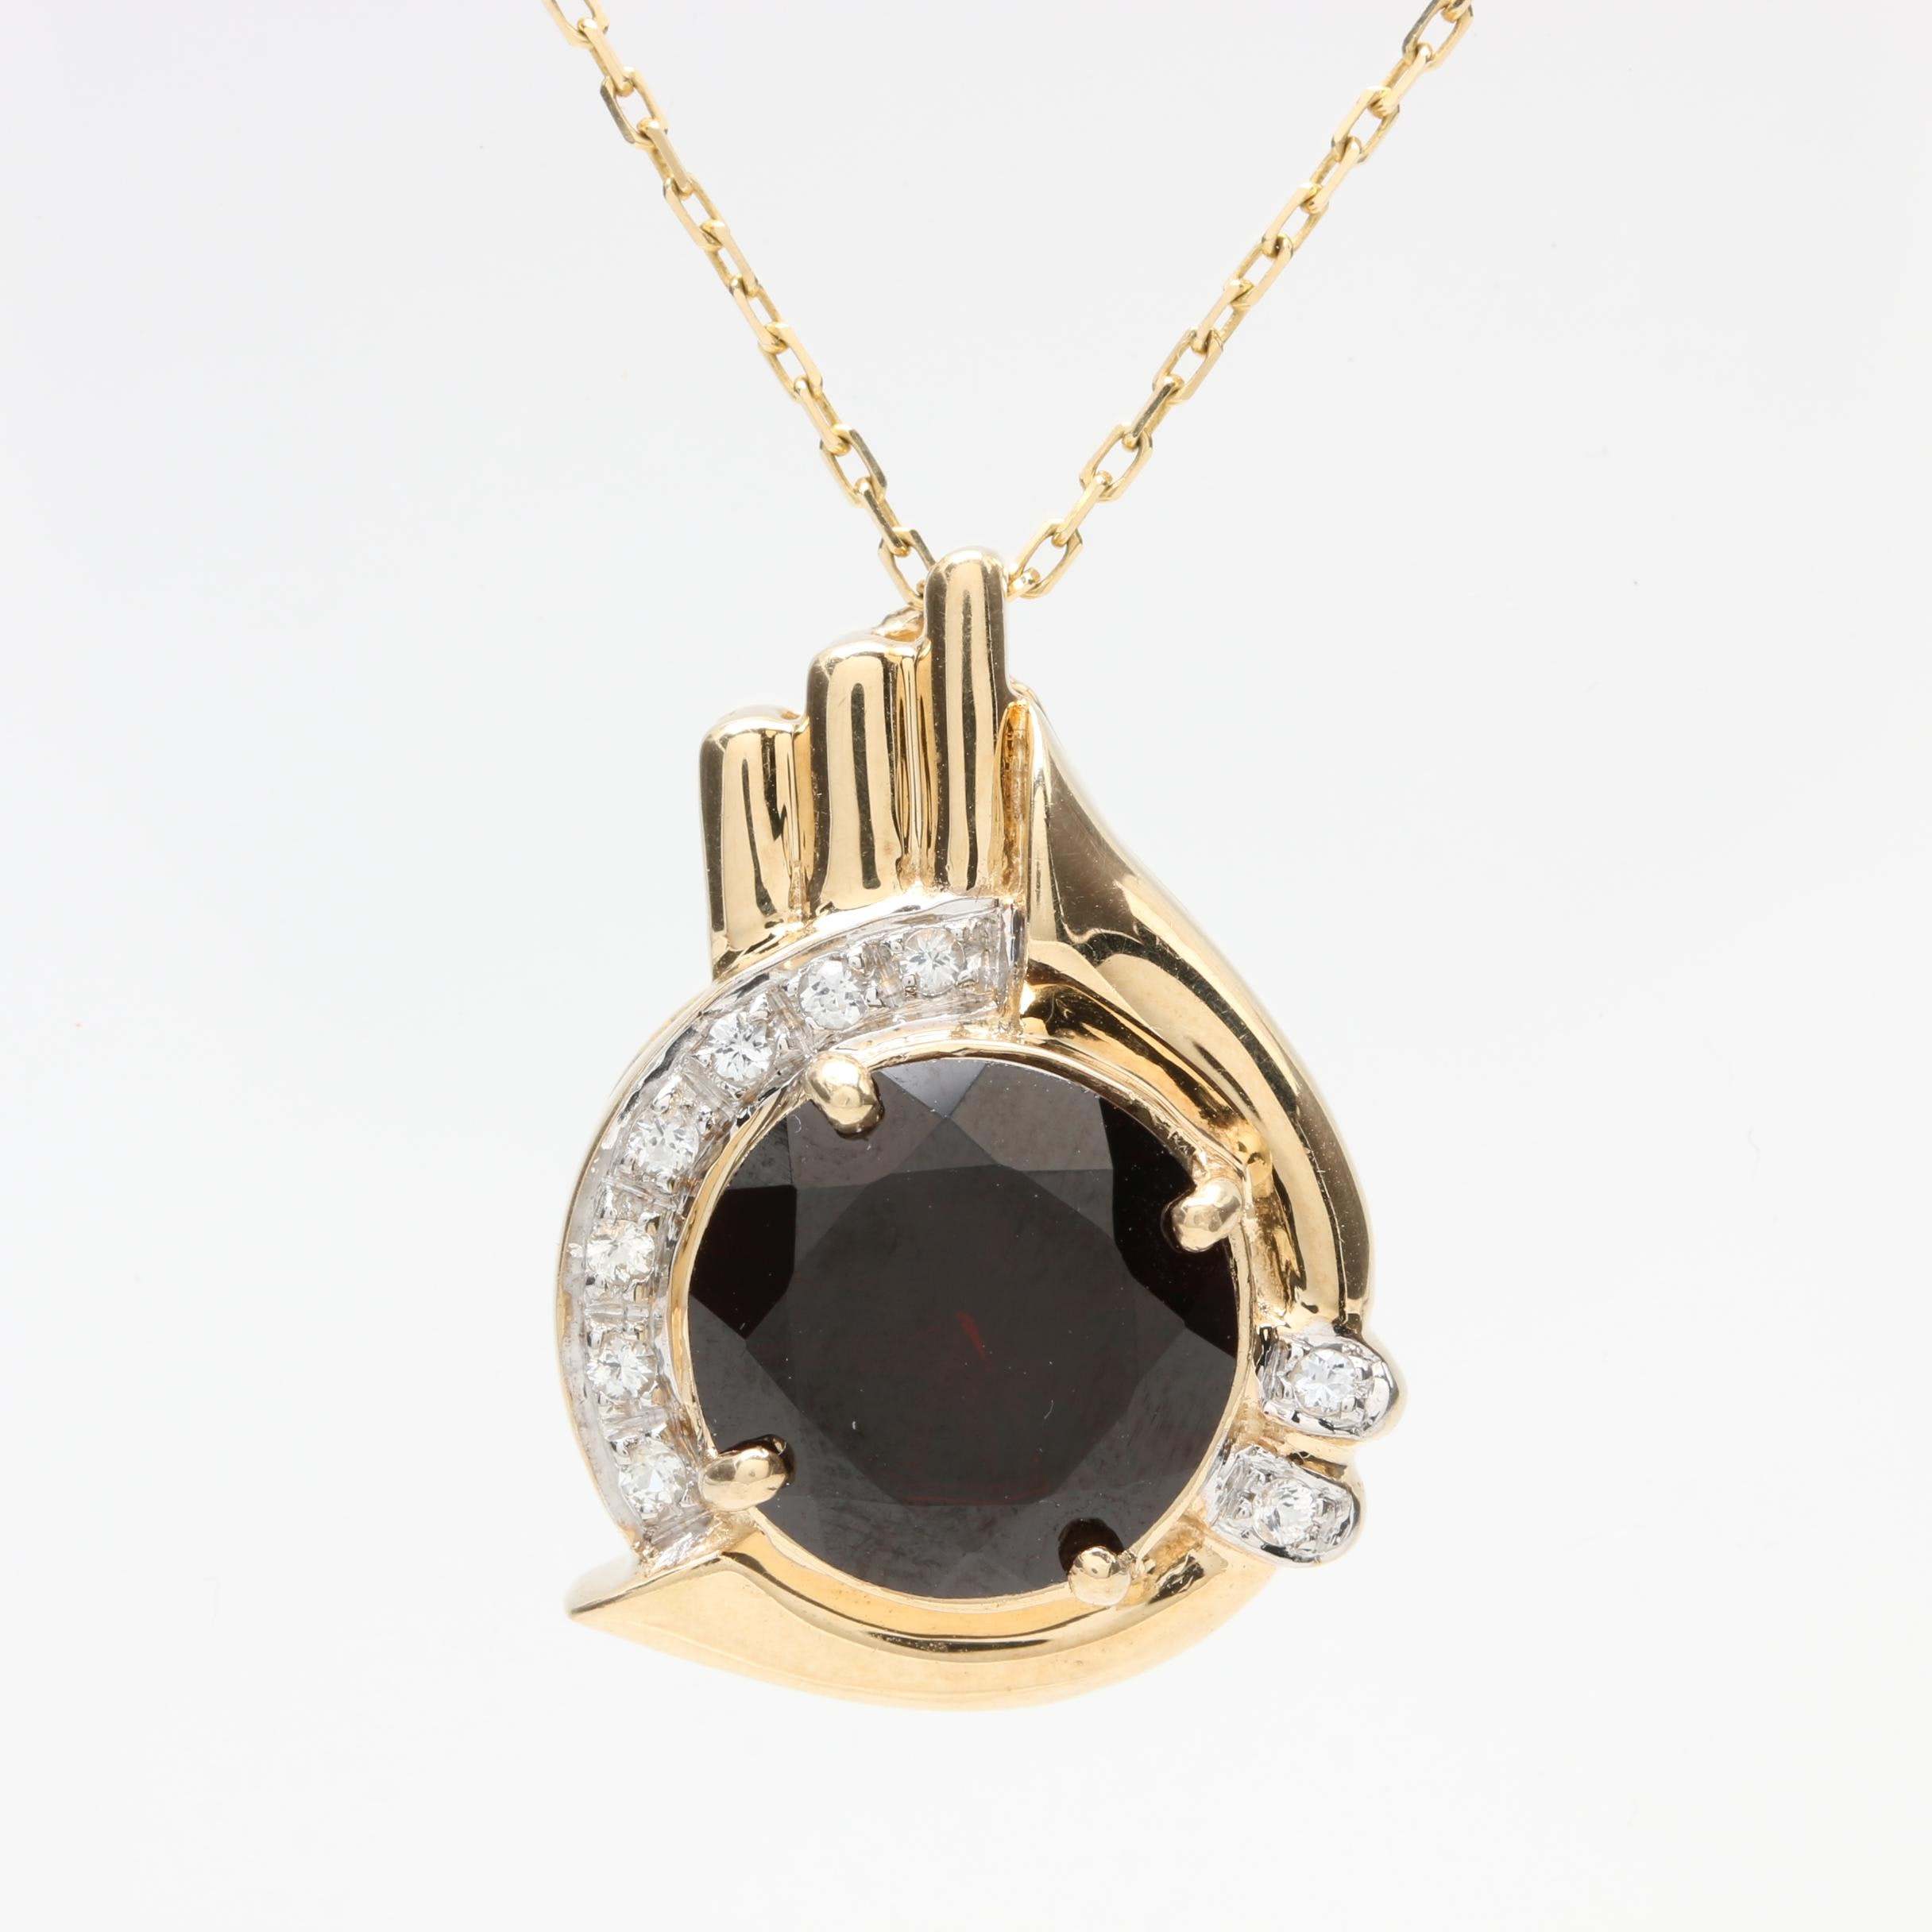 14K Yellow Gold Garnet and White Sapphire Pendant Necklace